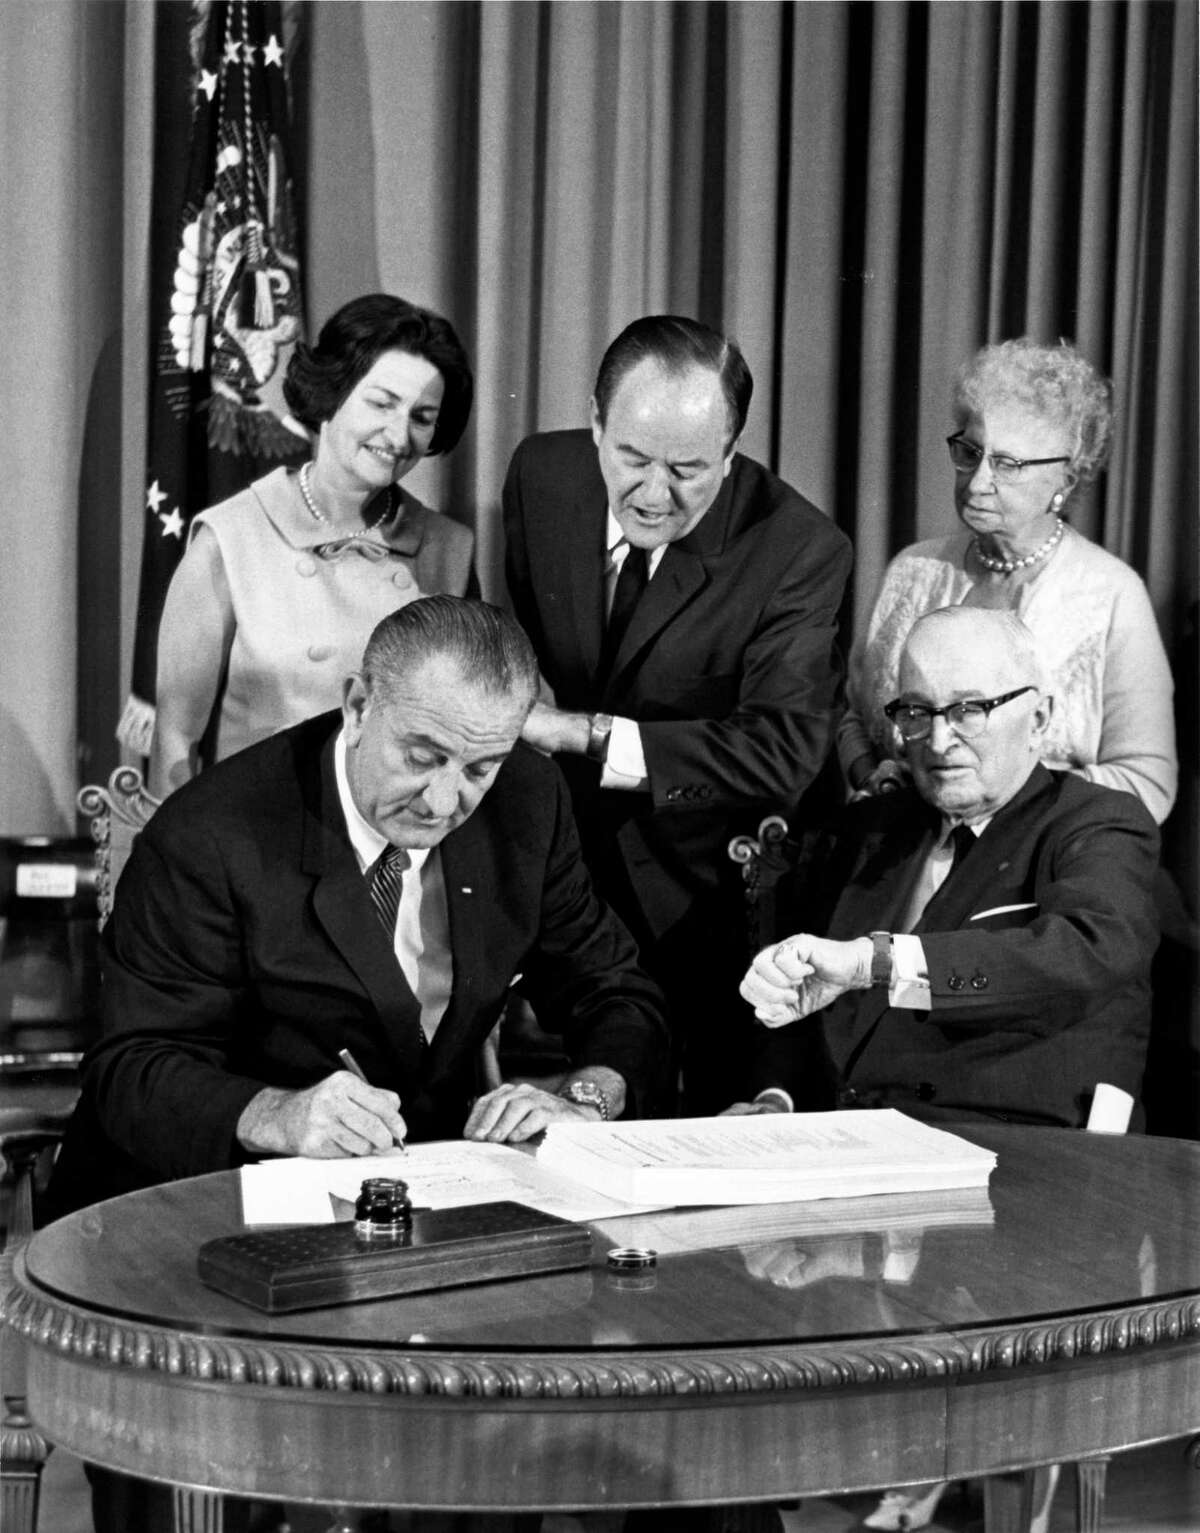 If President Biden's American Families and American Jobs bills are passed, they would herald changes on a scale not seen since President Lyndon B. Johnson's Great Society set of domestic programs. In this July 1965 file photo, Johnson, left, signs the Medicare Bill. With him are First Lady Lady Bird Johnson, Vice President Hubert Humphrey, center, former President Harry S. Truman and former First Lady Bess Truman. Other programs addressed education, poverty and transportation.